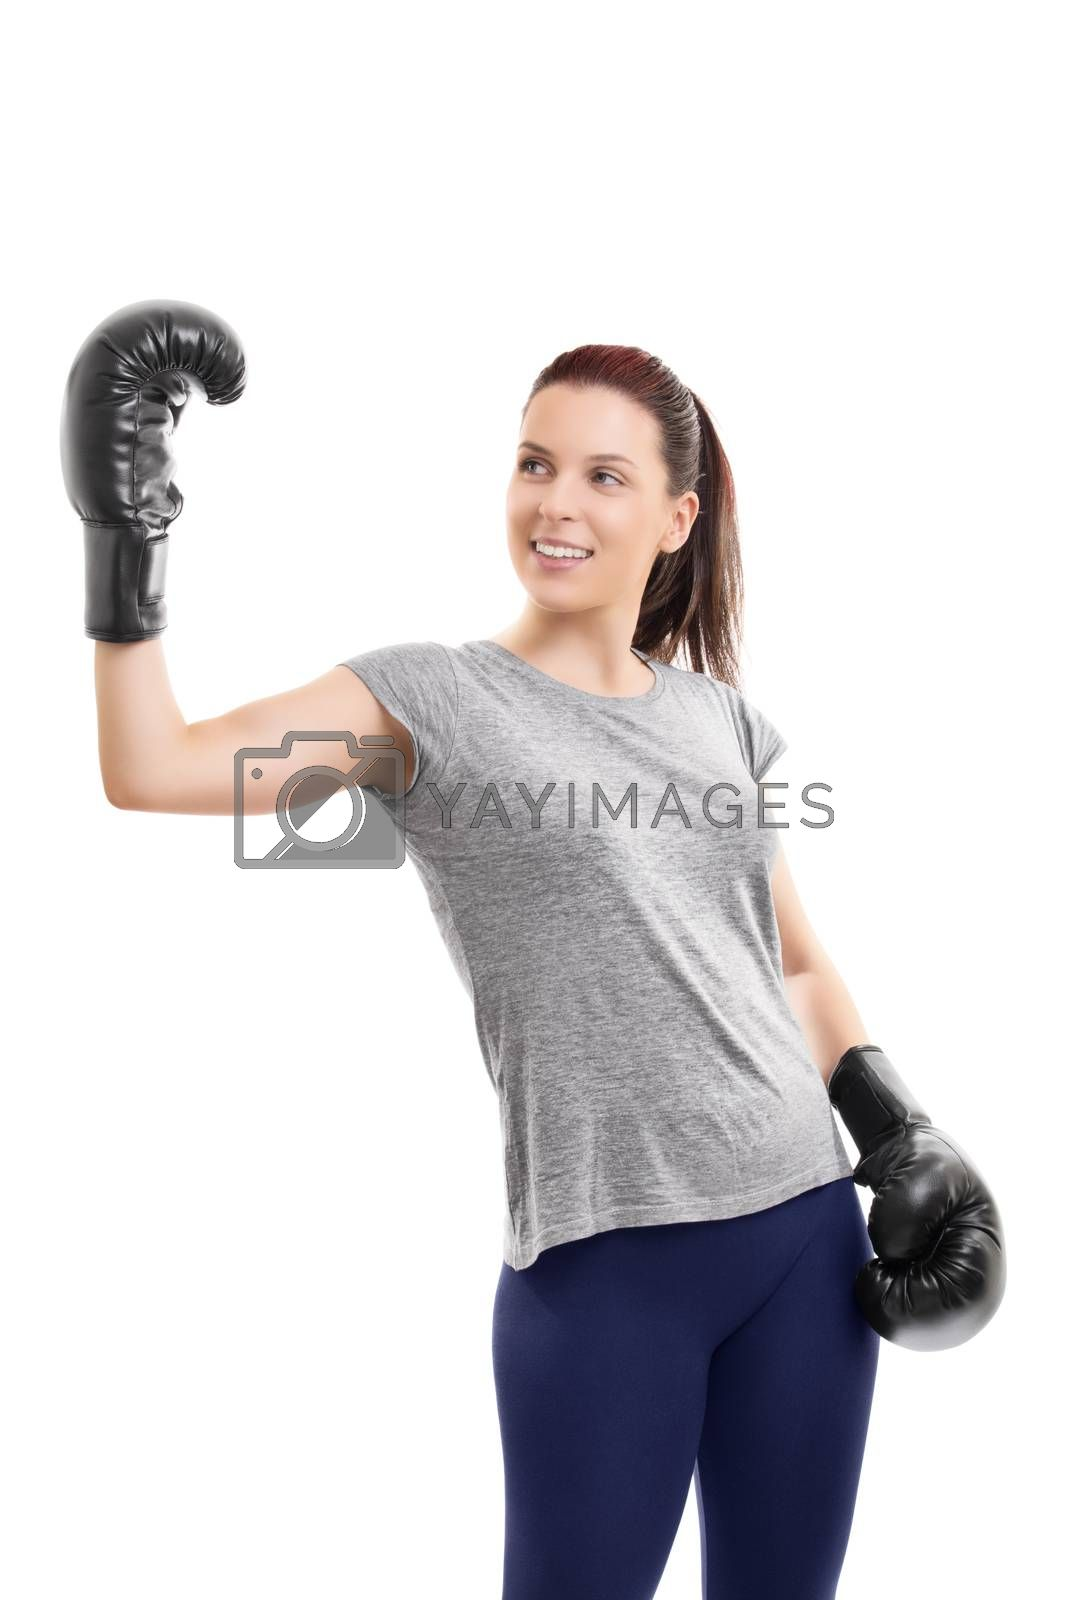 Girl with boxing gloves raising hand in celebration by Mendelex